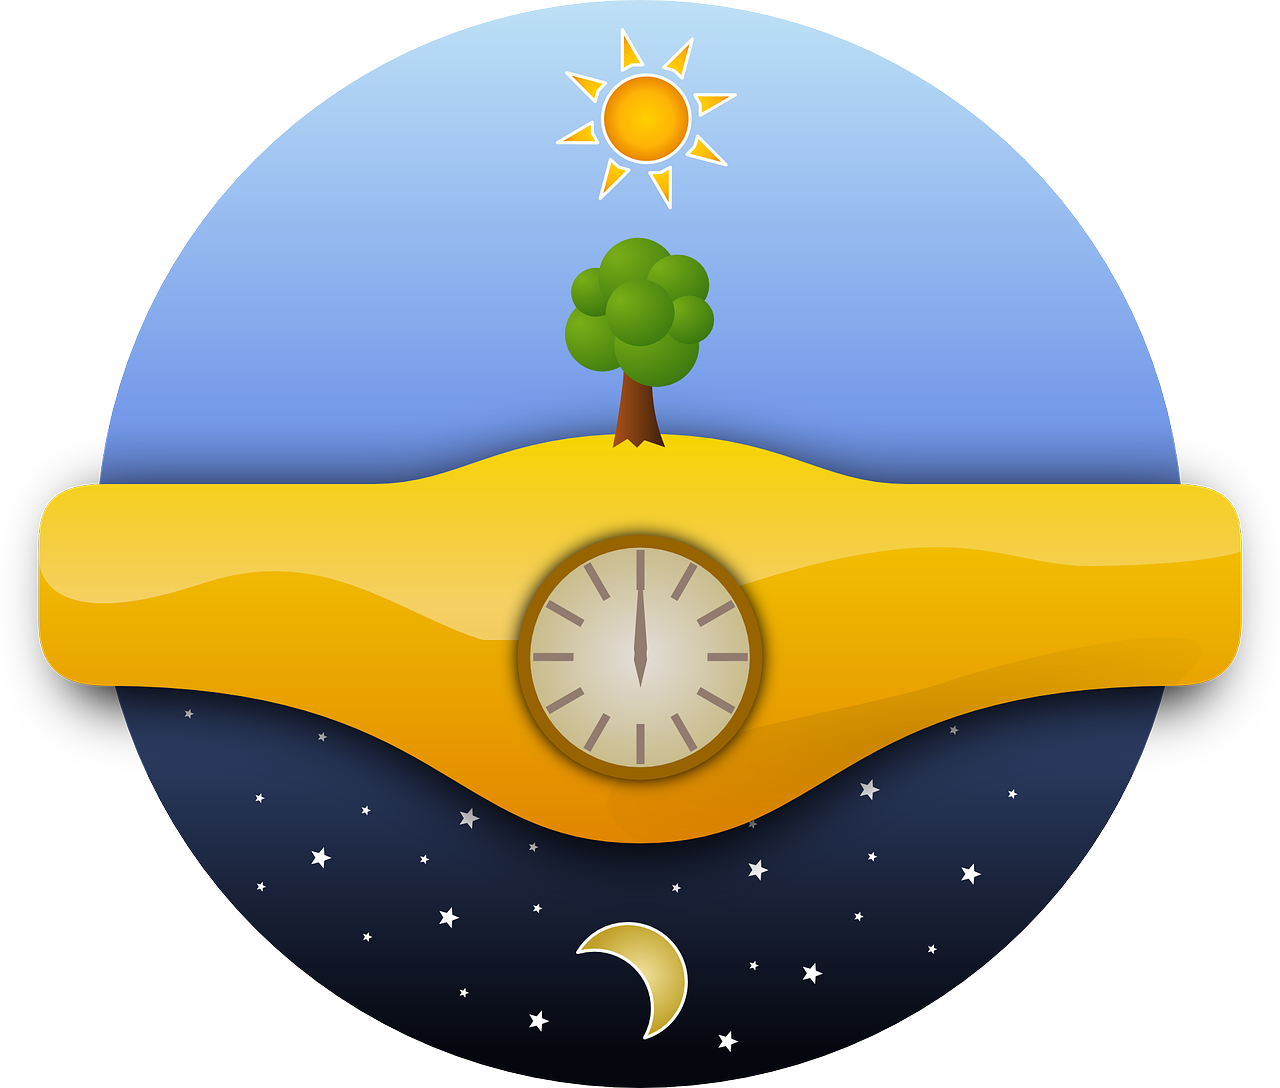 Noon sun clipart graphic freeuse Two techniques for telling time without a watch - Outdoor Revival graphic freeuse